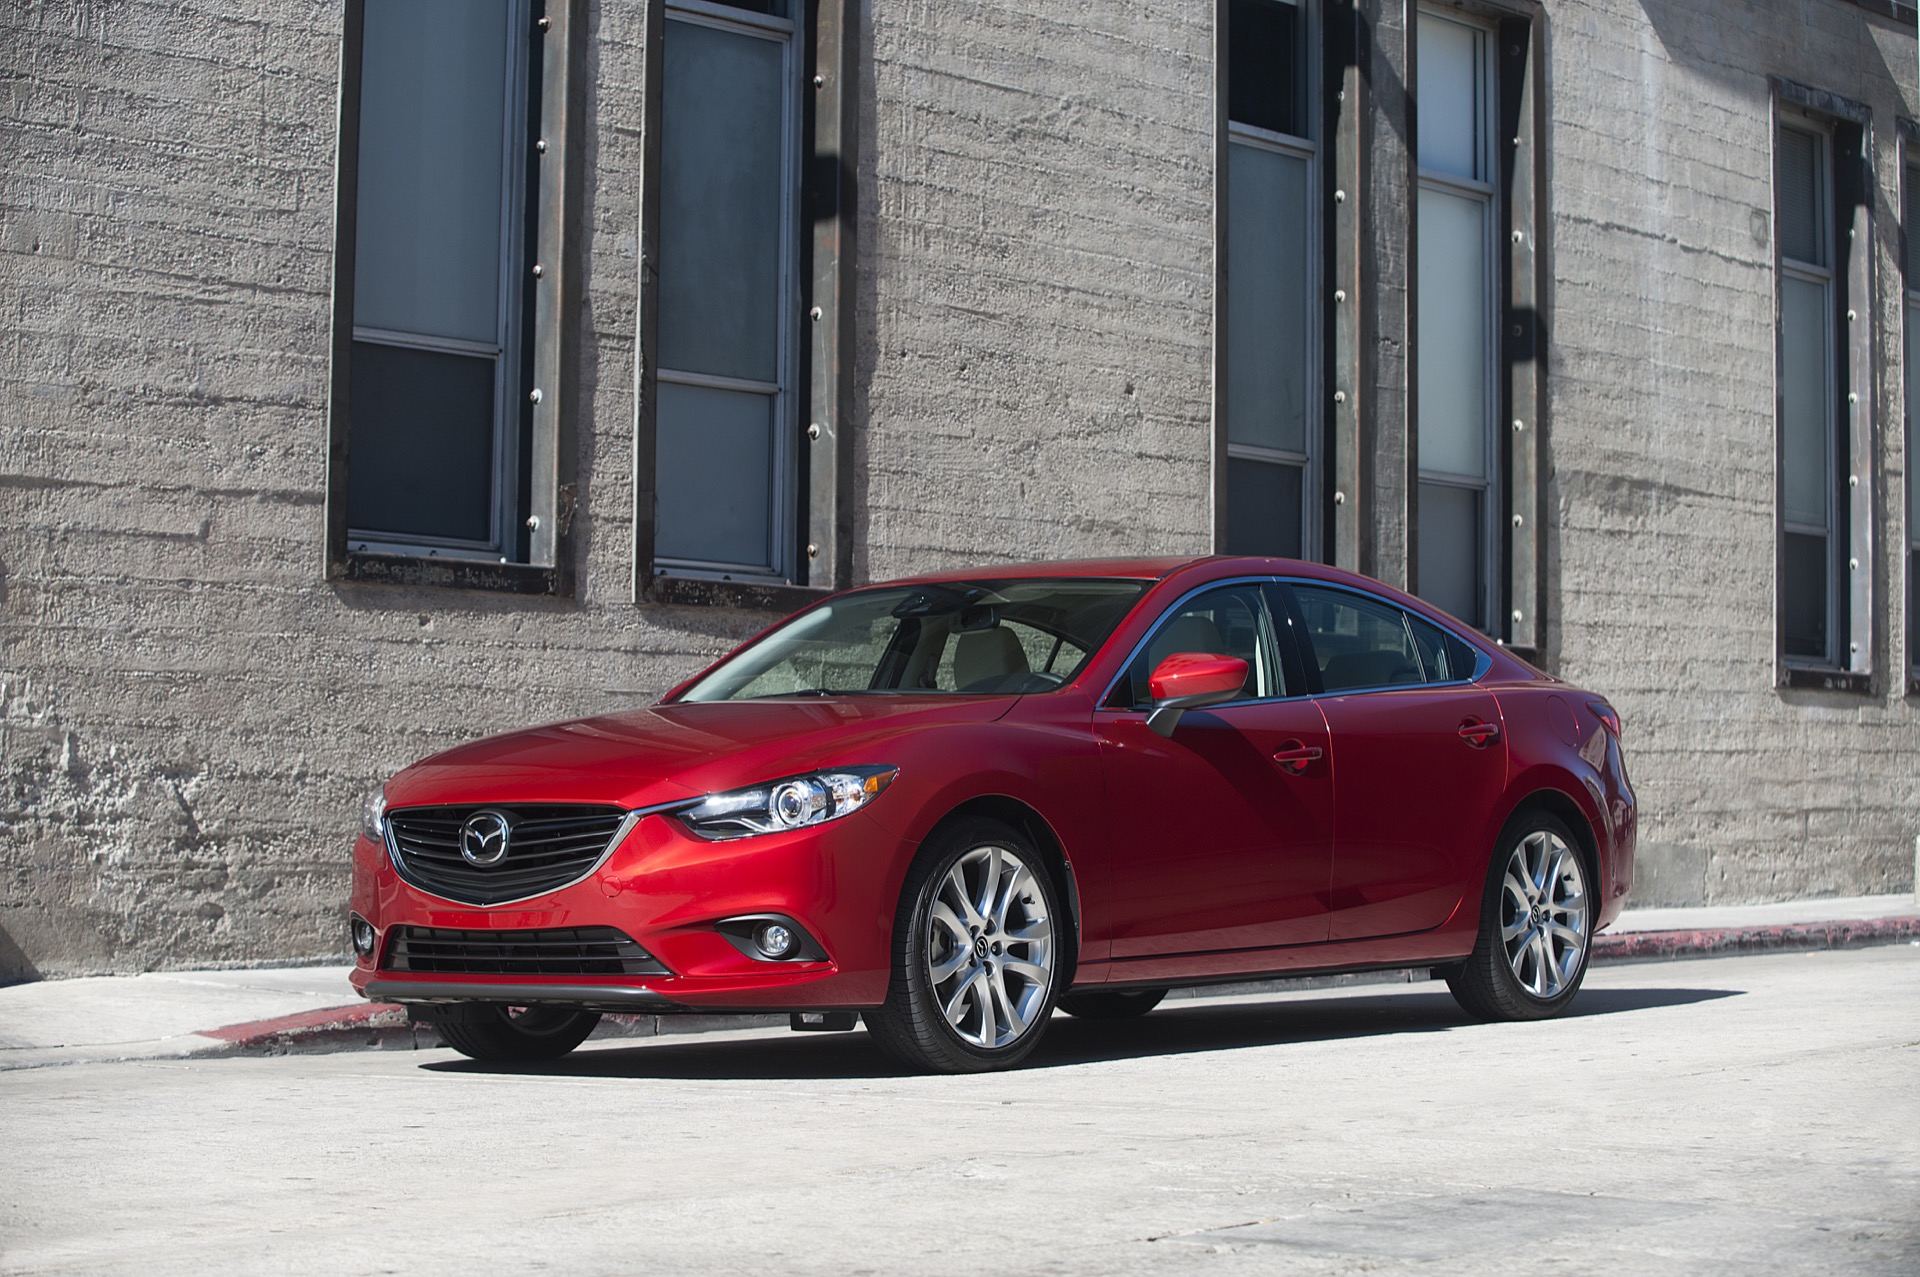 2015 mazda mazda6 review ratings specs prices and photos the car connection. Black Bedroom Furniture Sets. Home Design Ideas